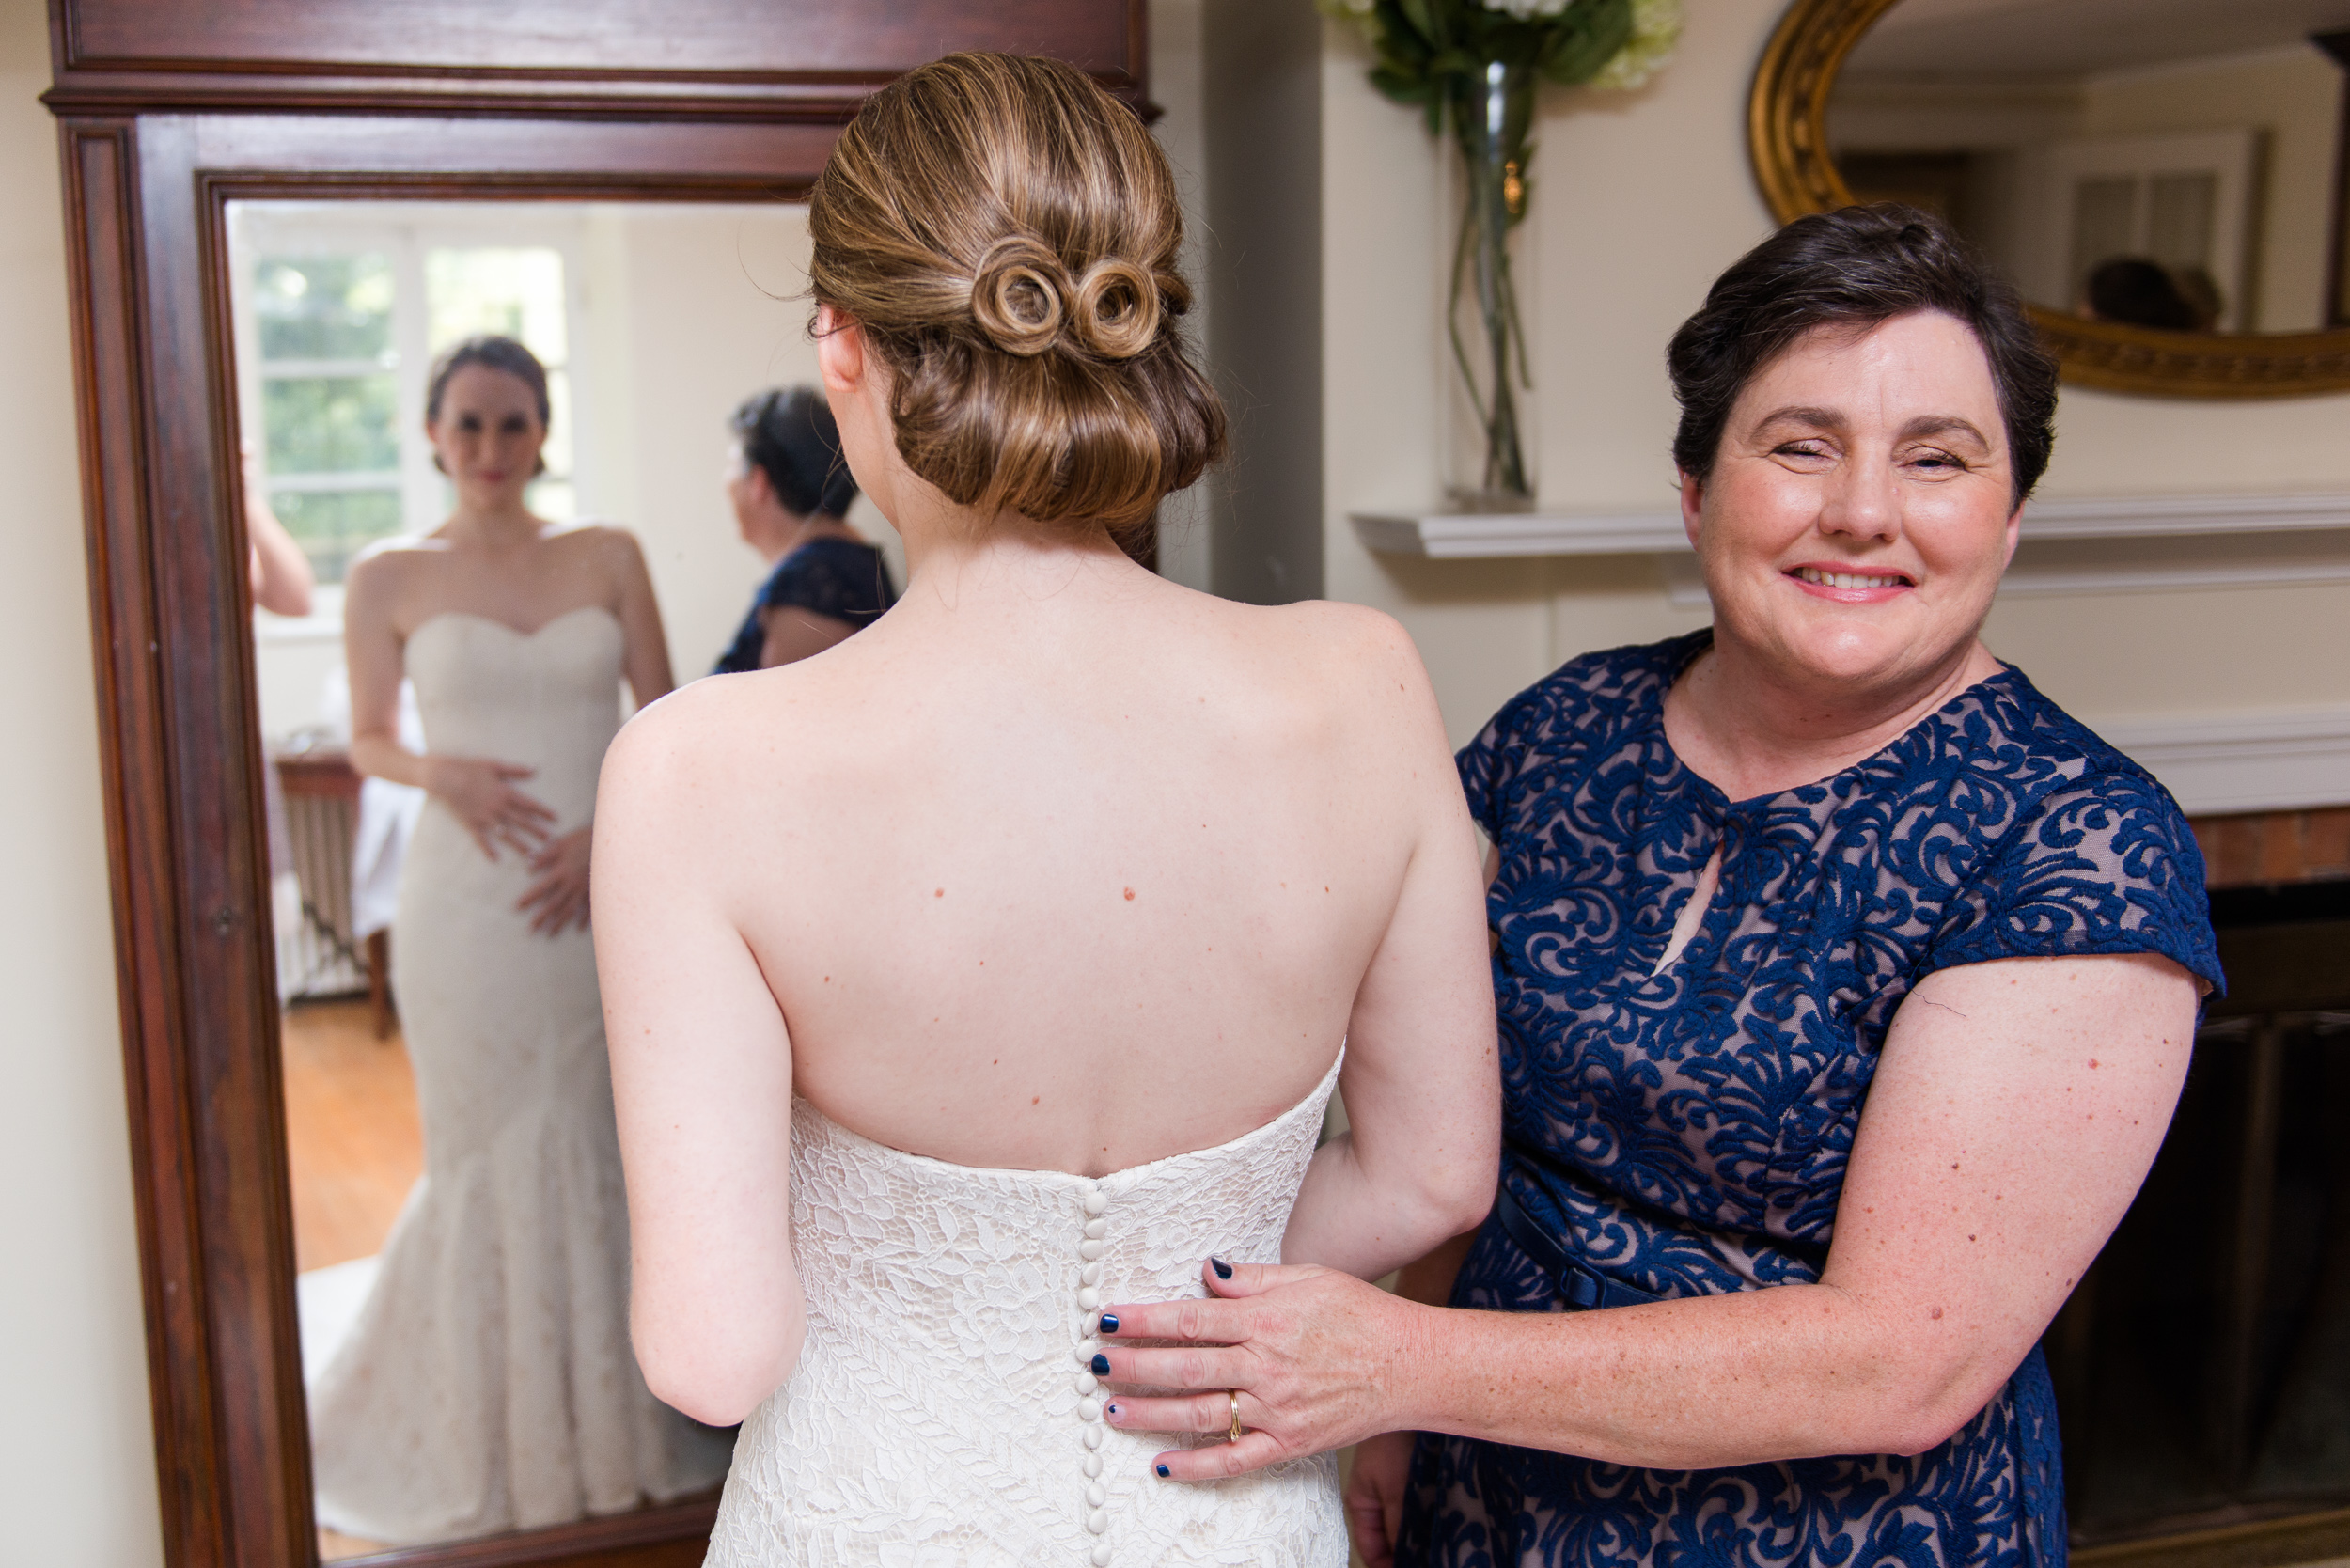 The mother of the bride smiles as she helps her daughter get ready before her wedding at Oatlands Historic House and Gardens in Leesburg, Virginia